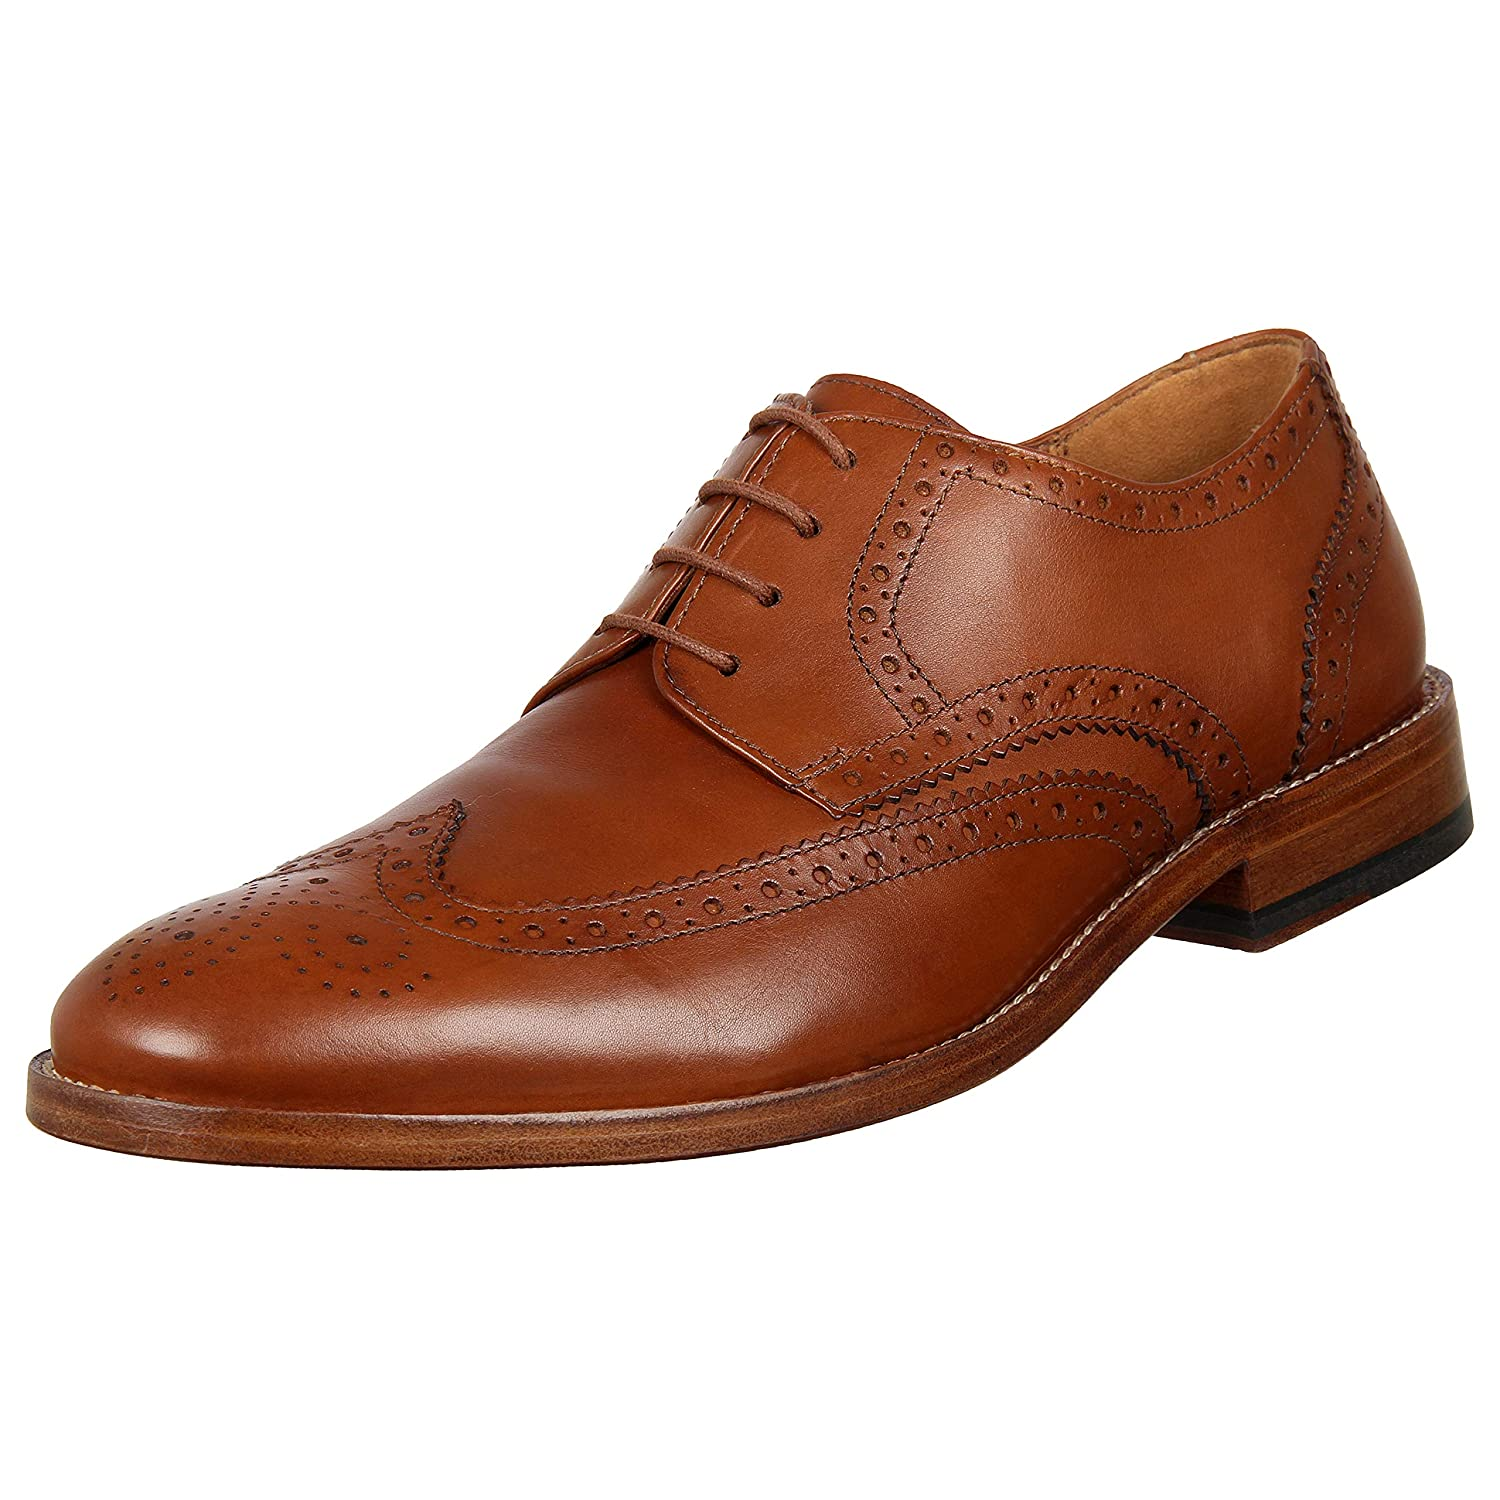 Buy Clarks James Wing Brown at Amazon.in